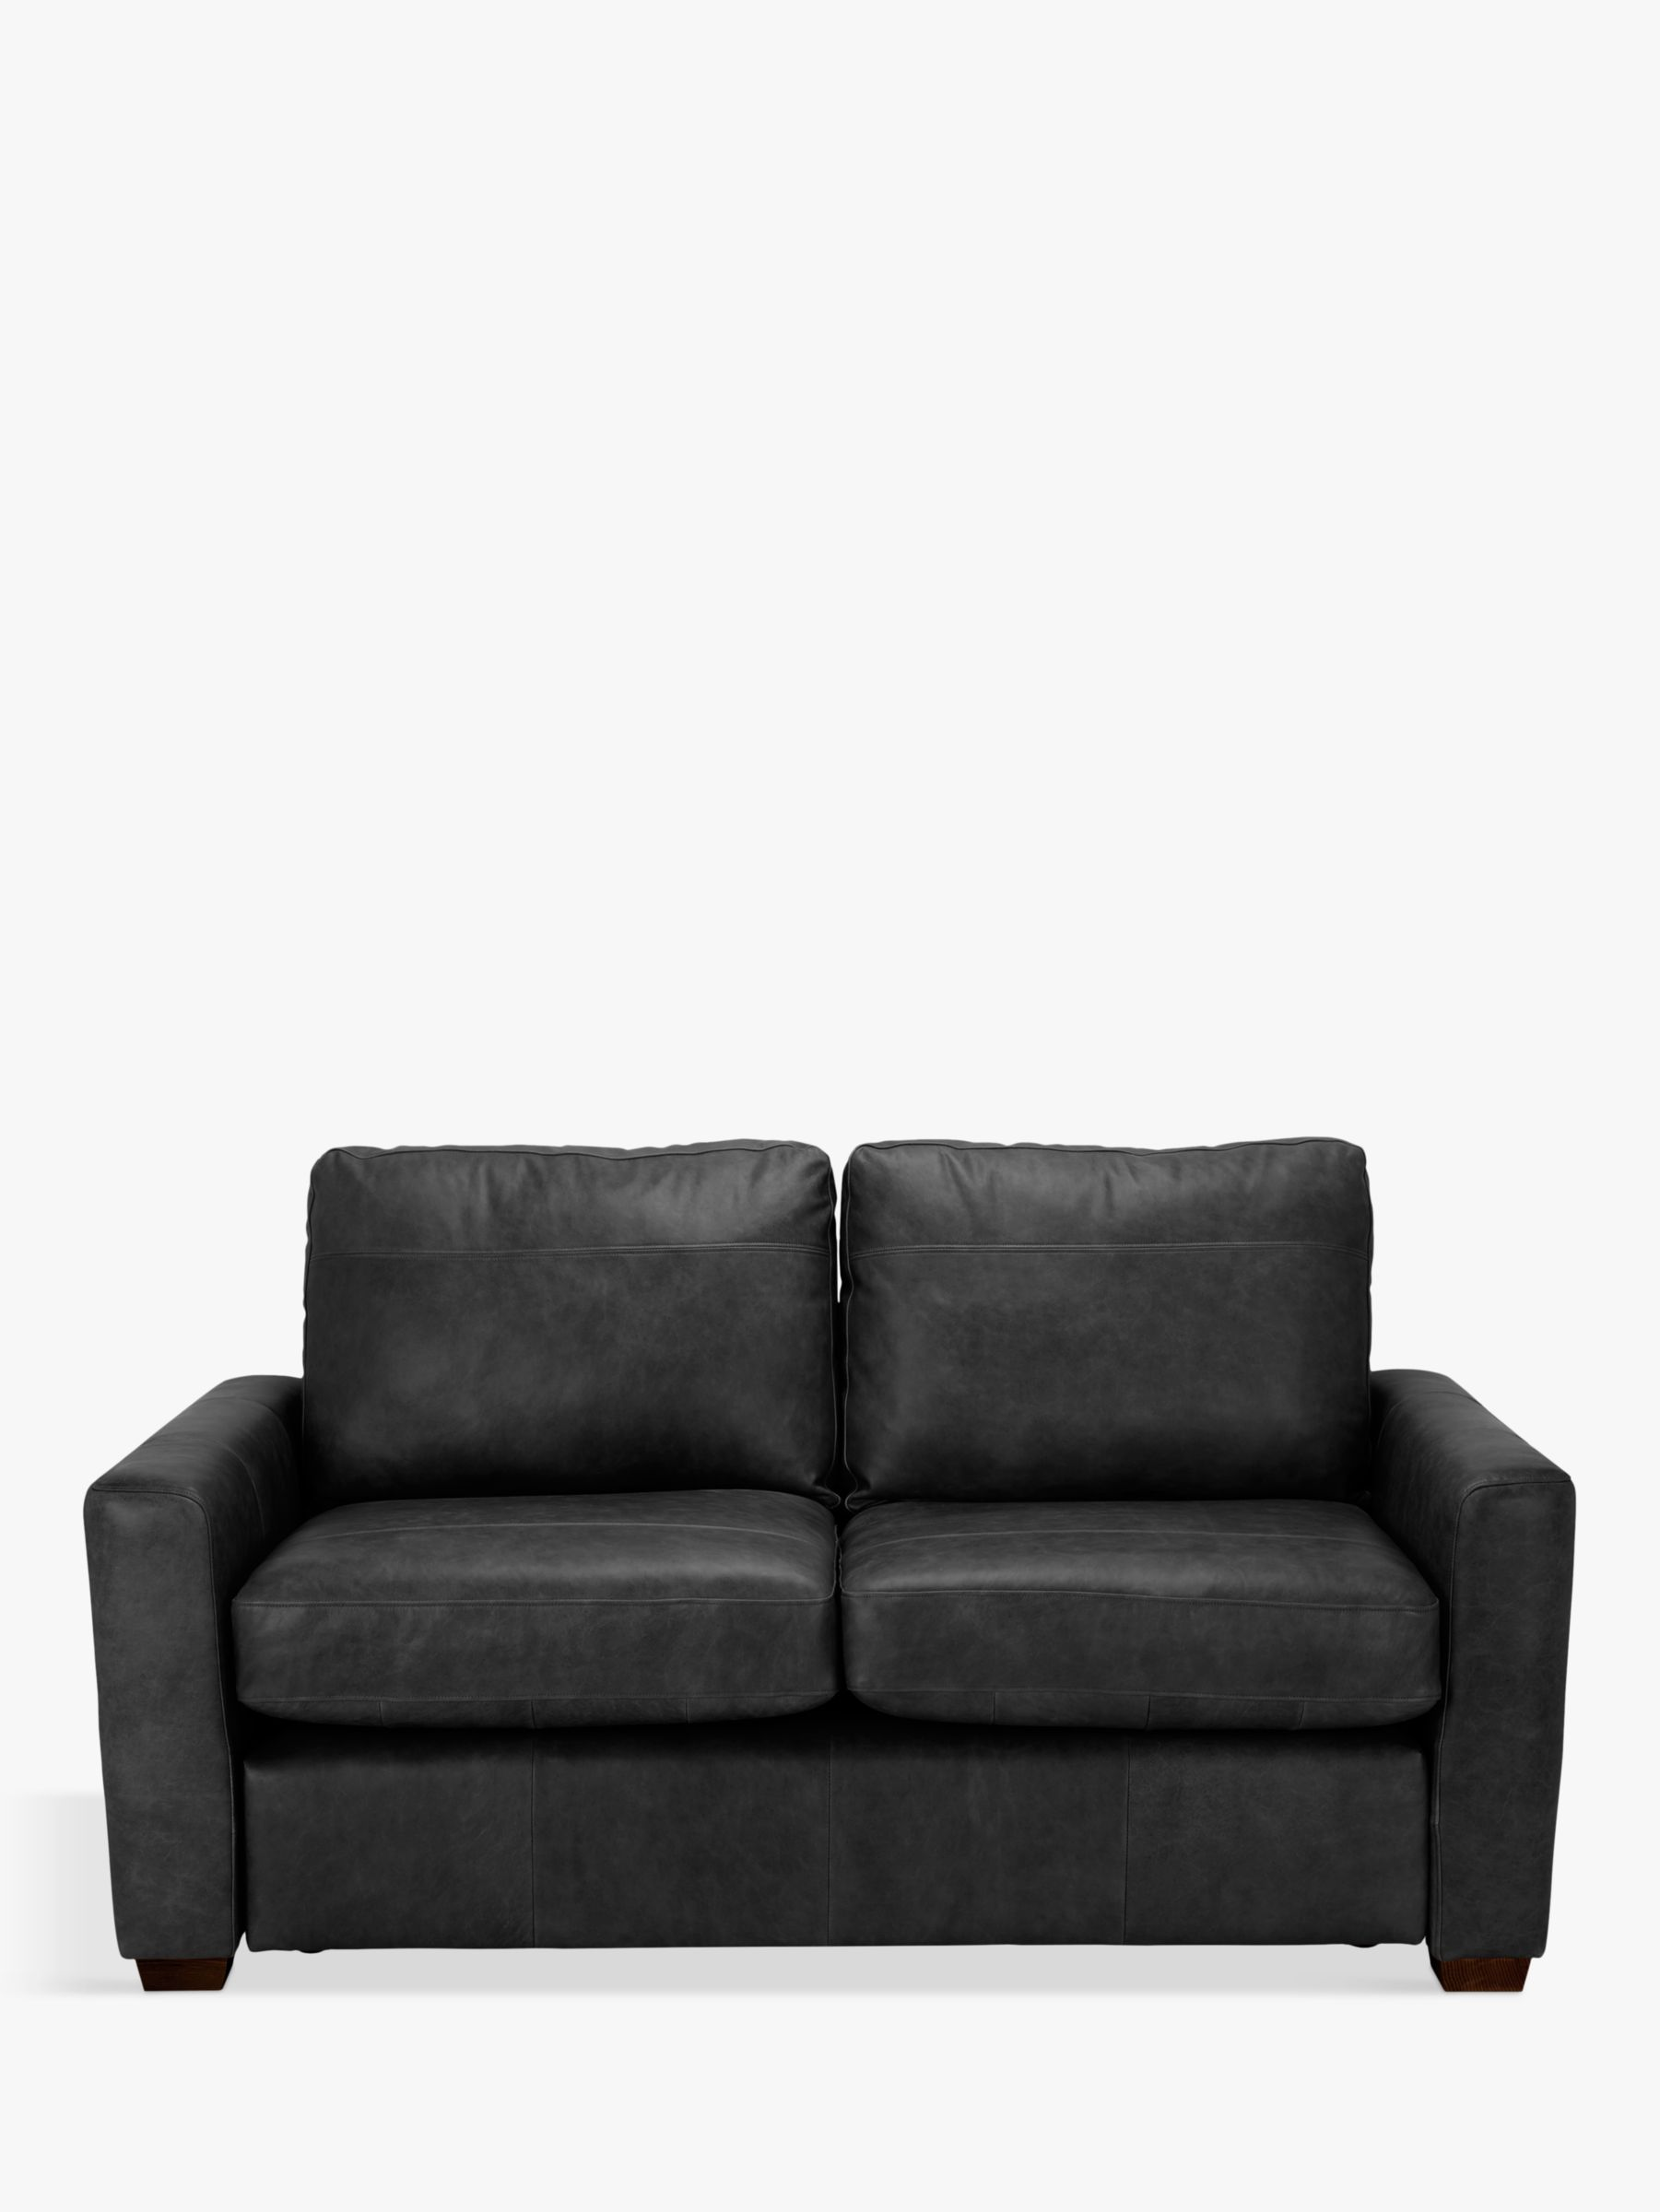 House by John Lewis Oliver Small 2 Seater Leather Sofa, Dark Leg, Contempo Black